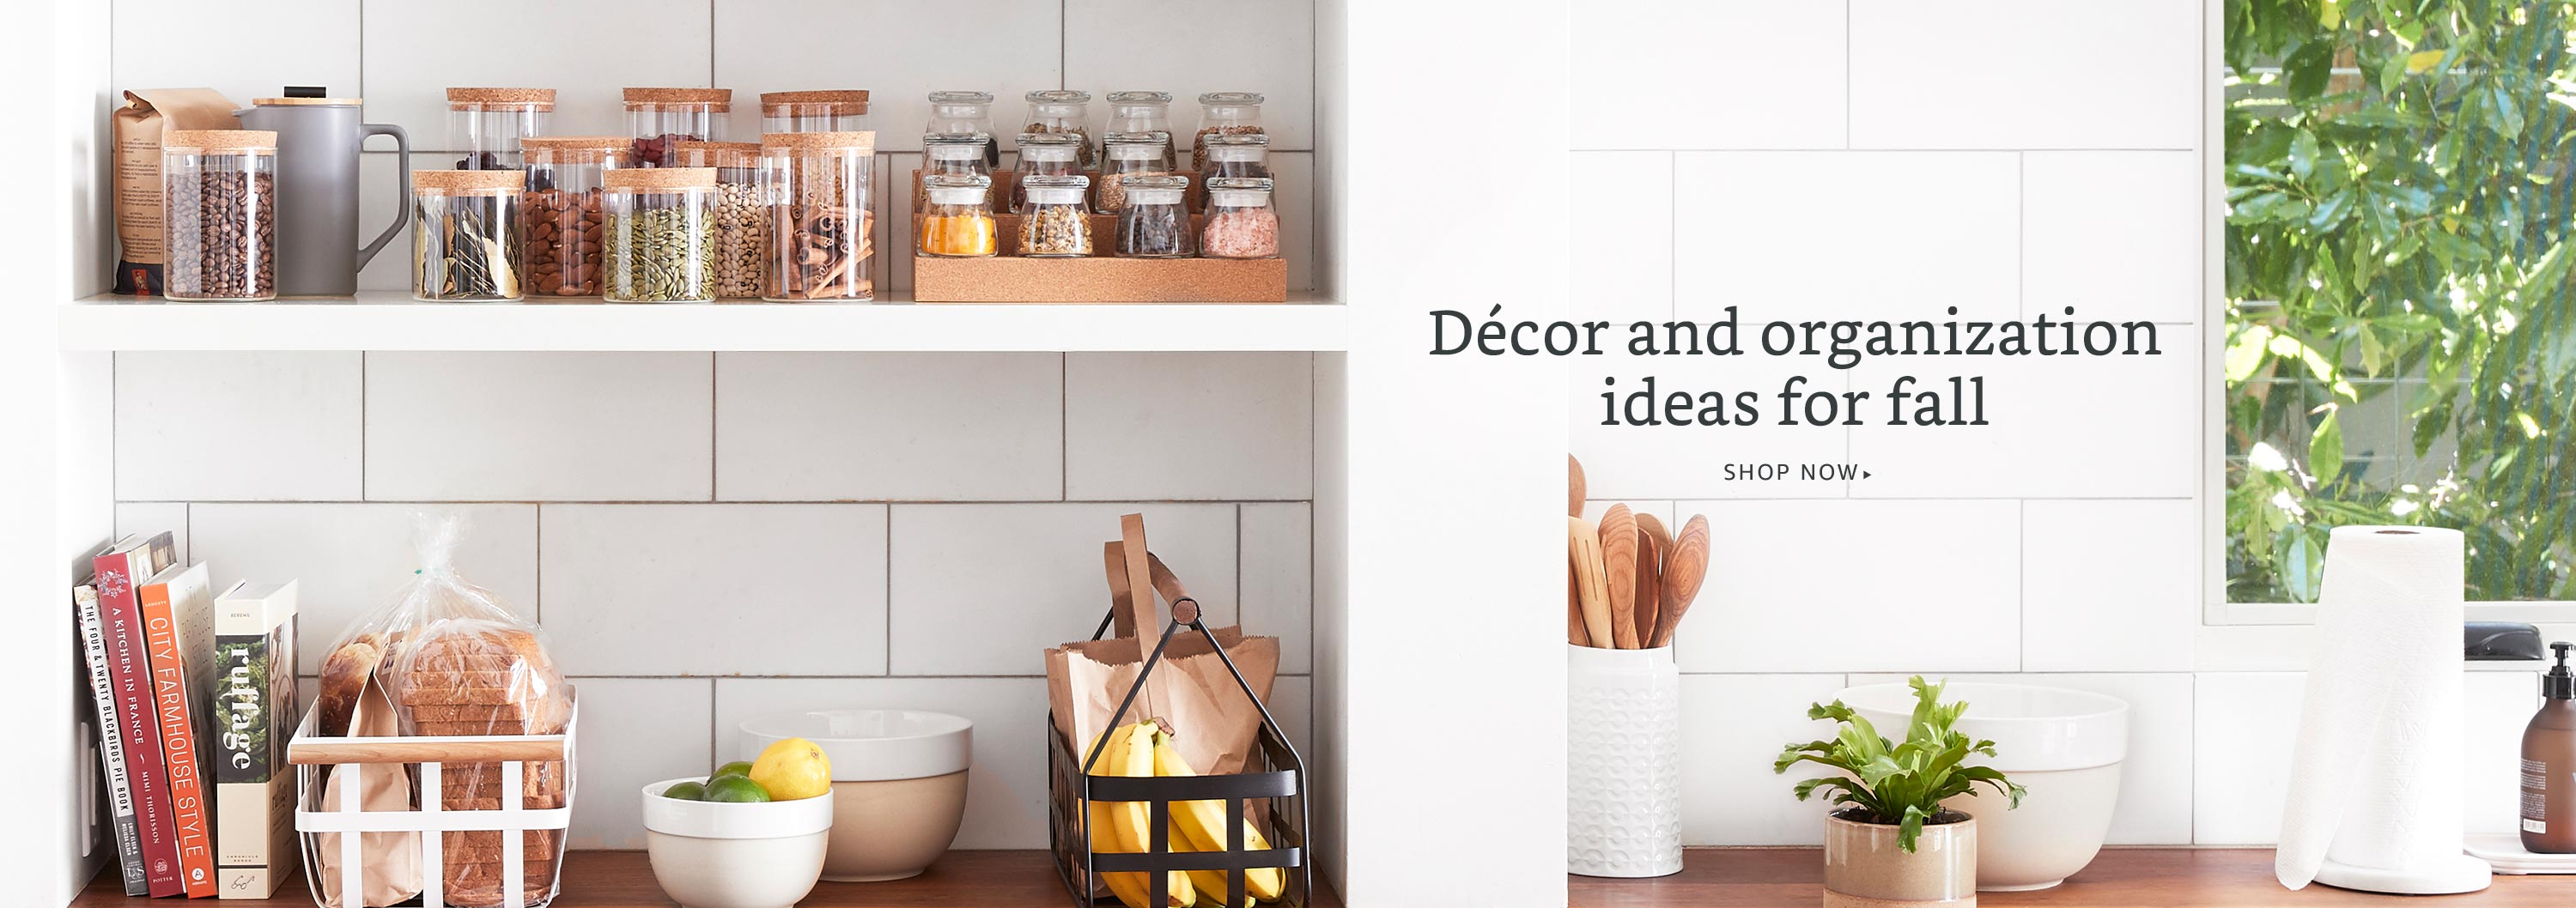 Decor and organization ideas for fall